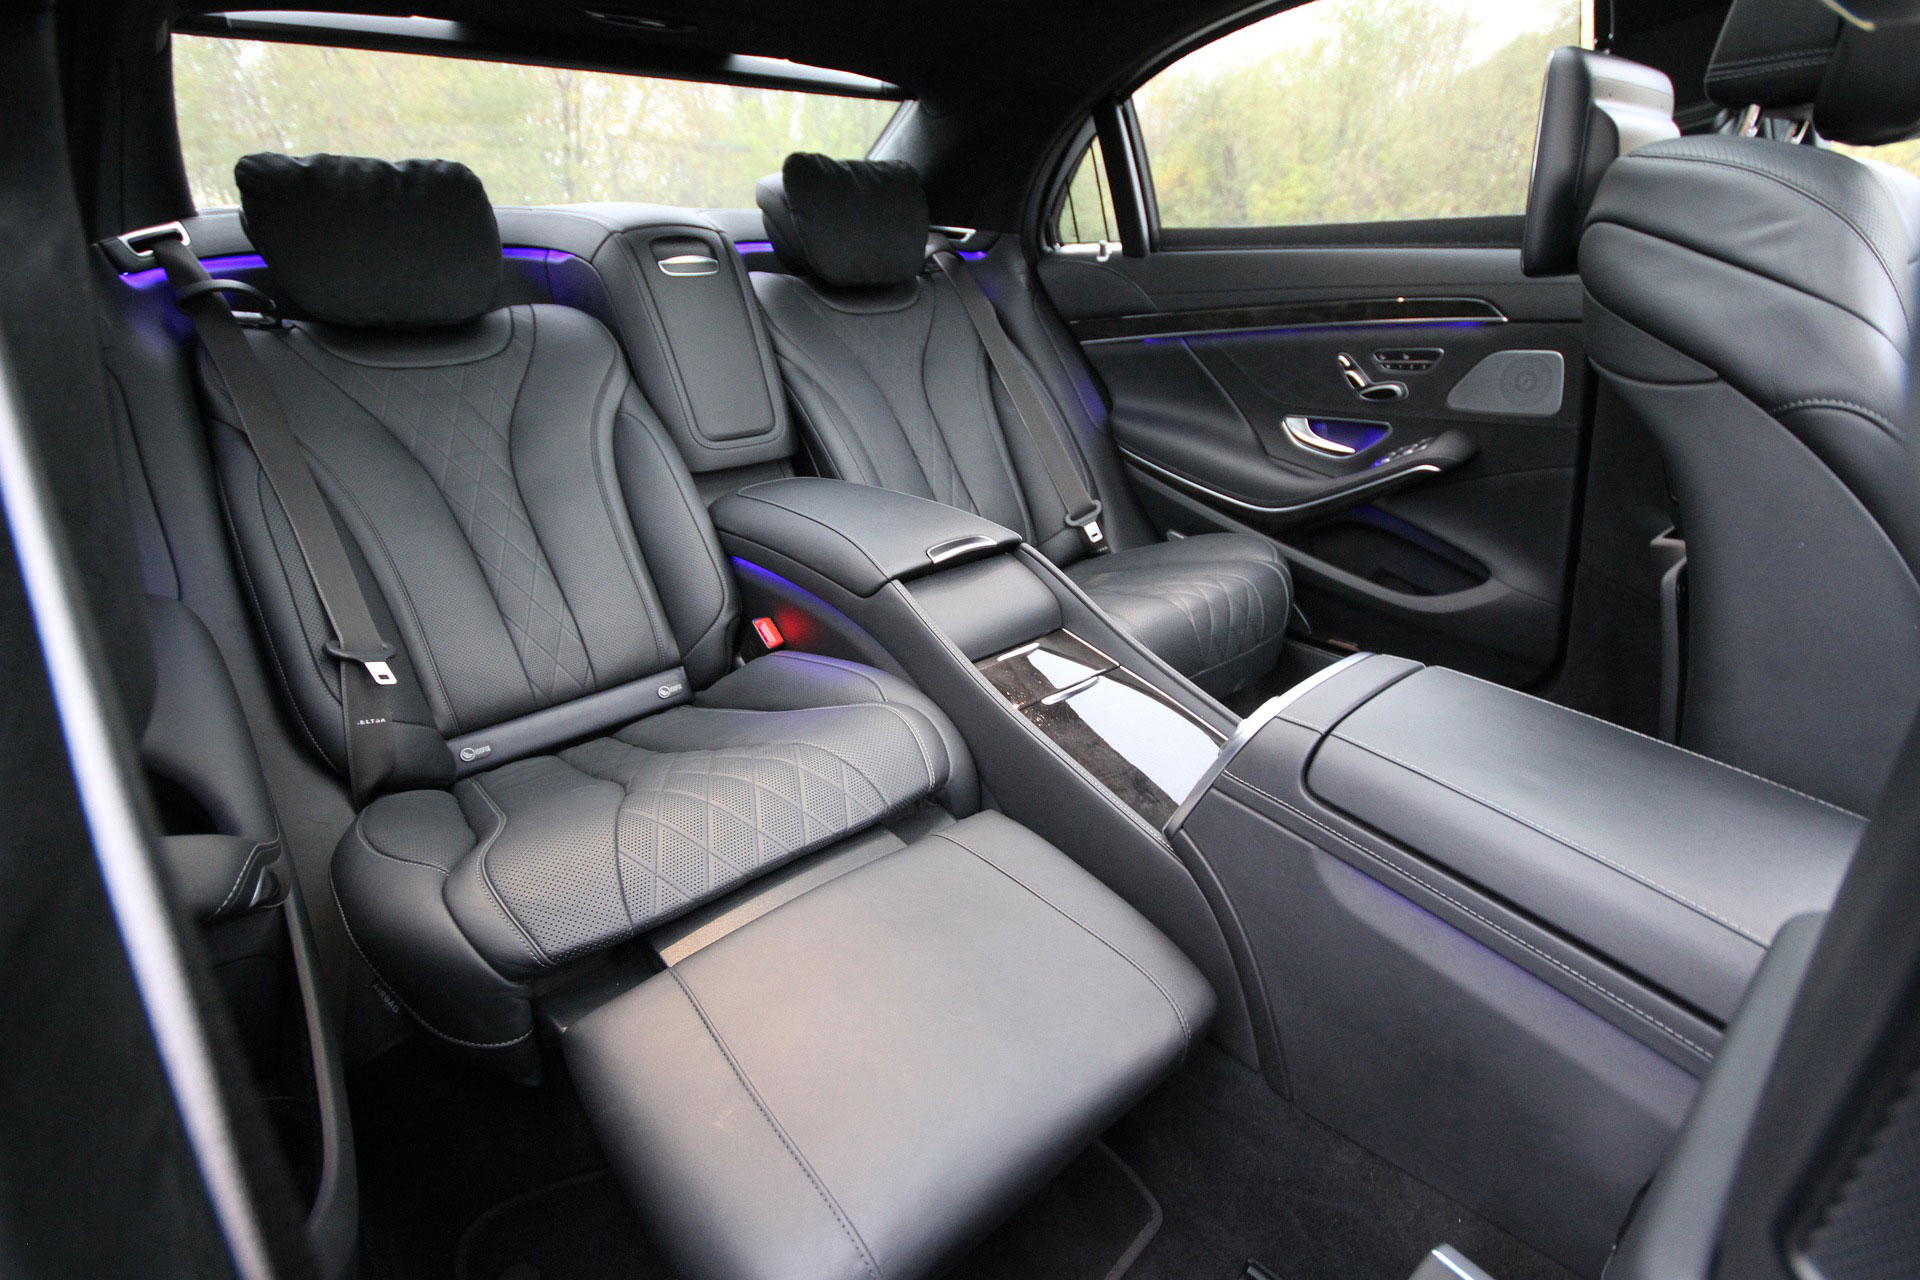 leather seats - inside a limo